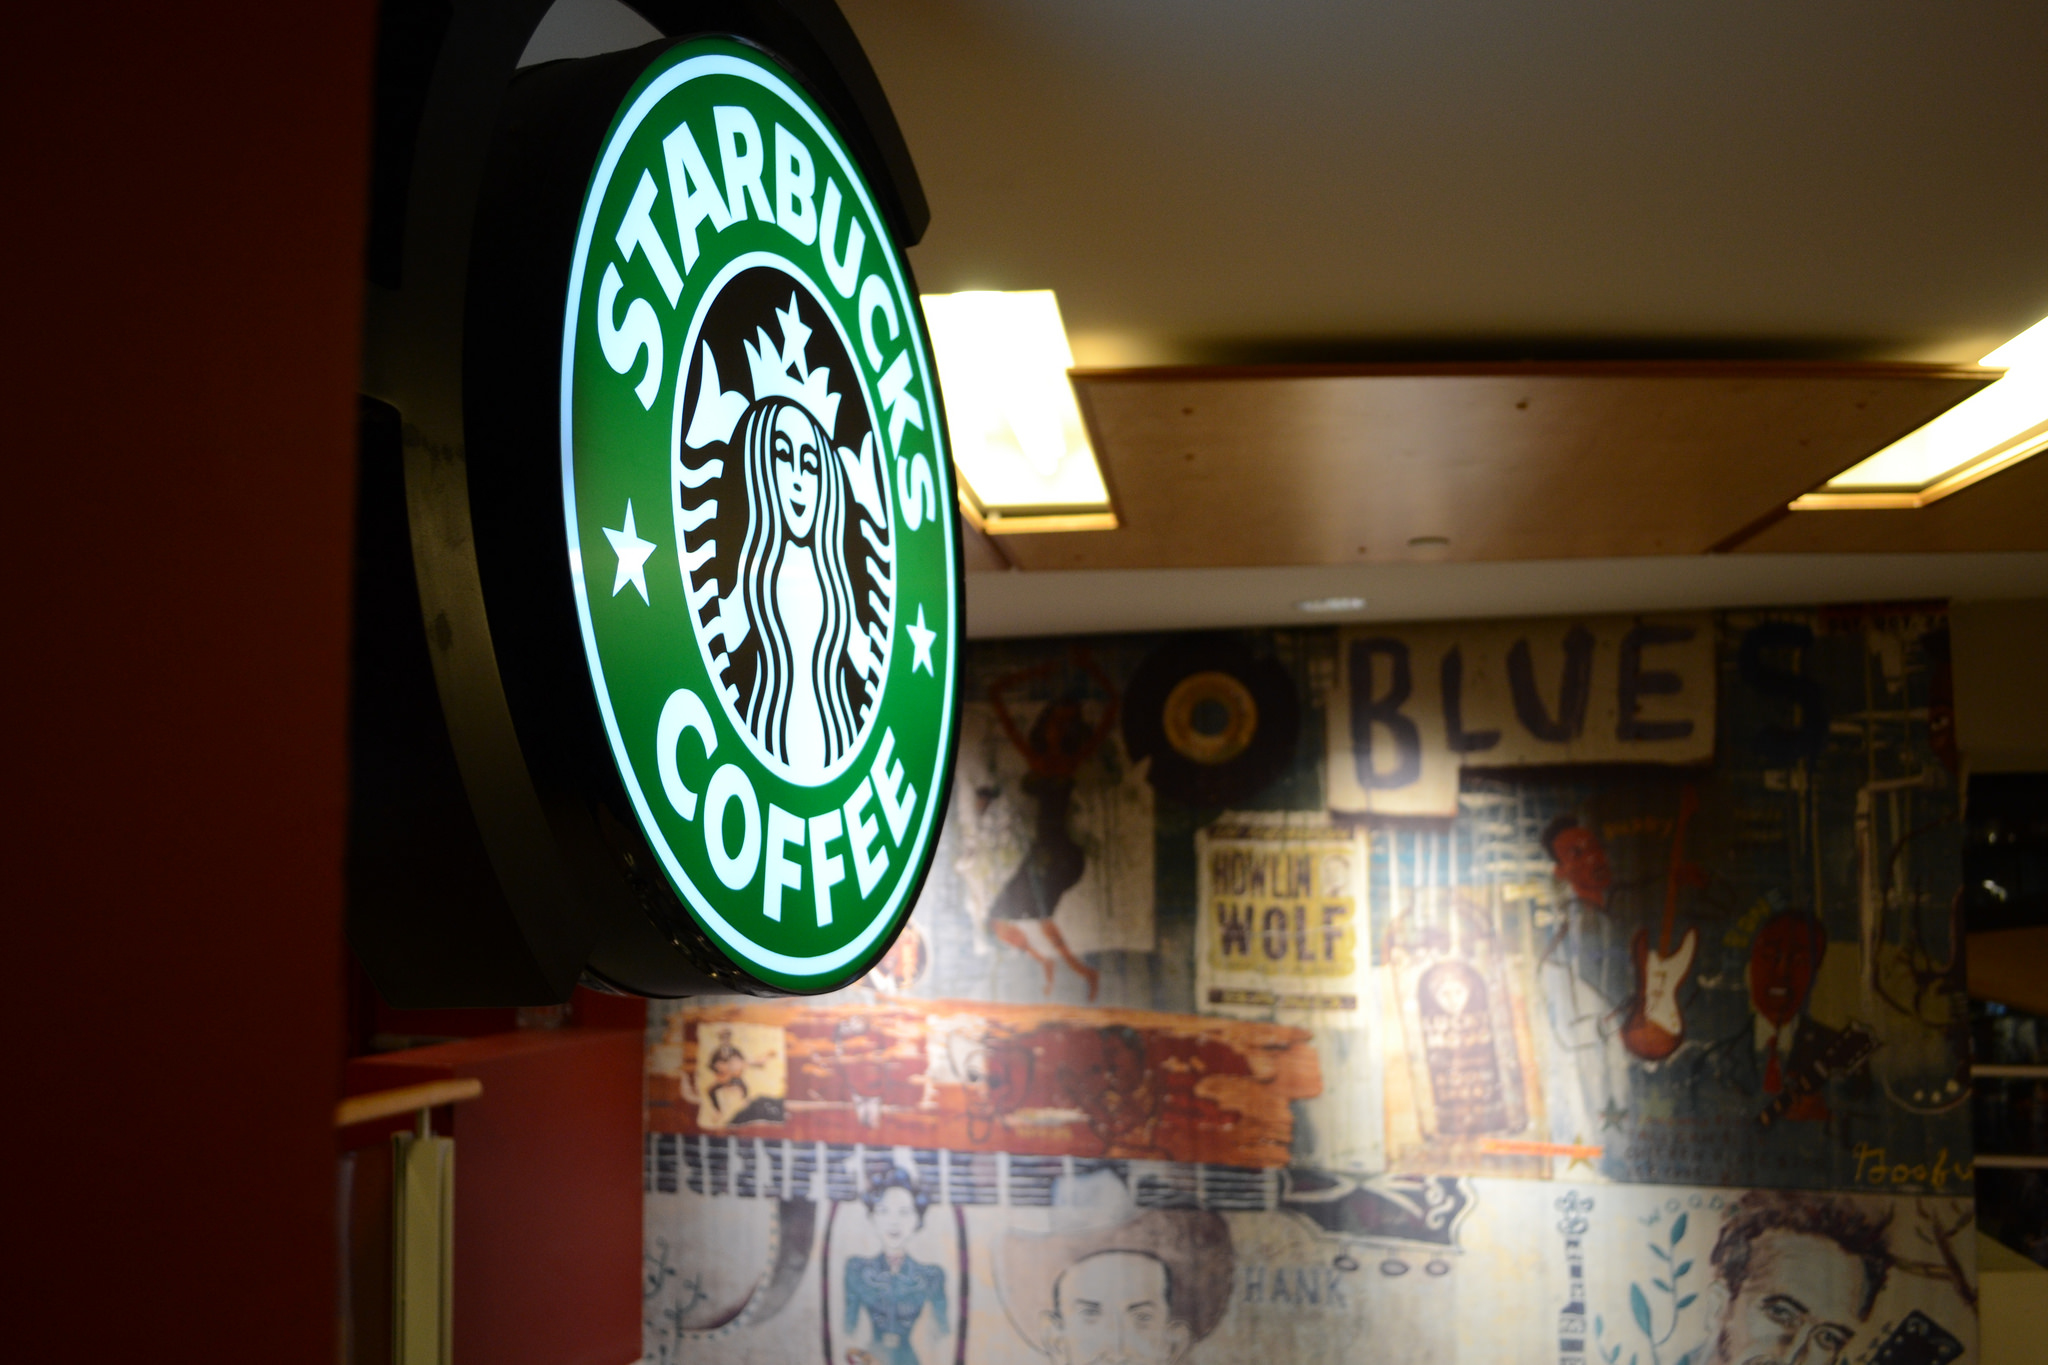 Starbucks 'firing on all cylinders' in C.P.G.